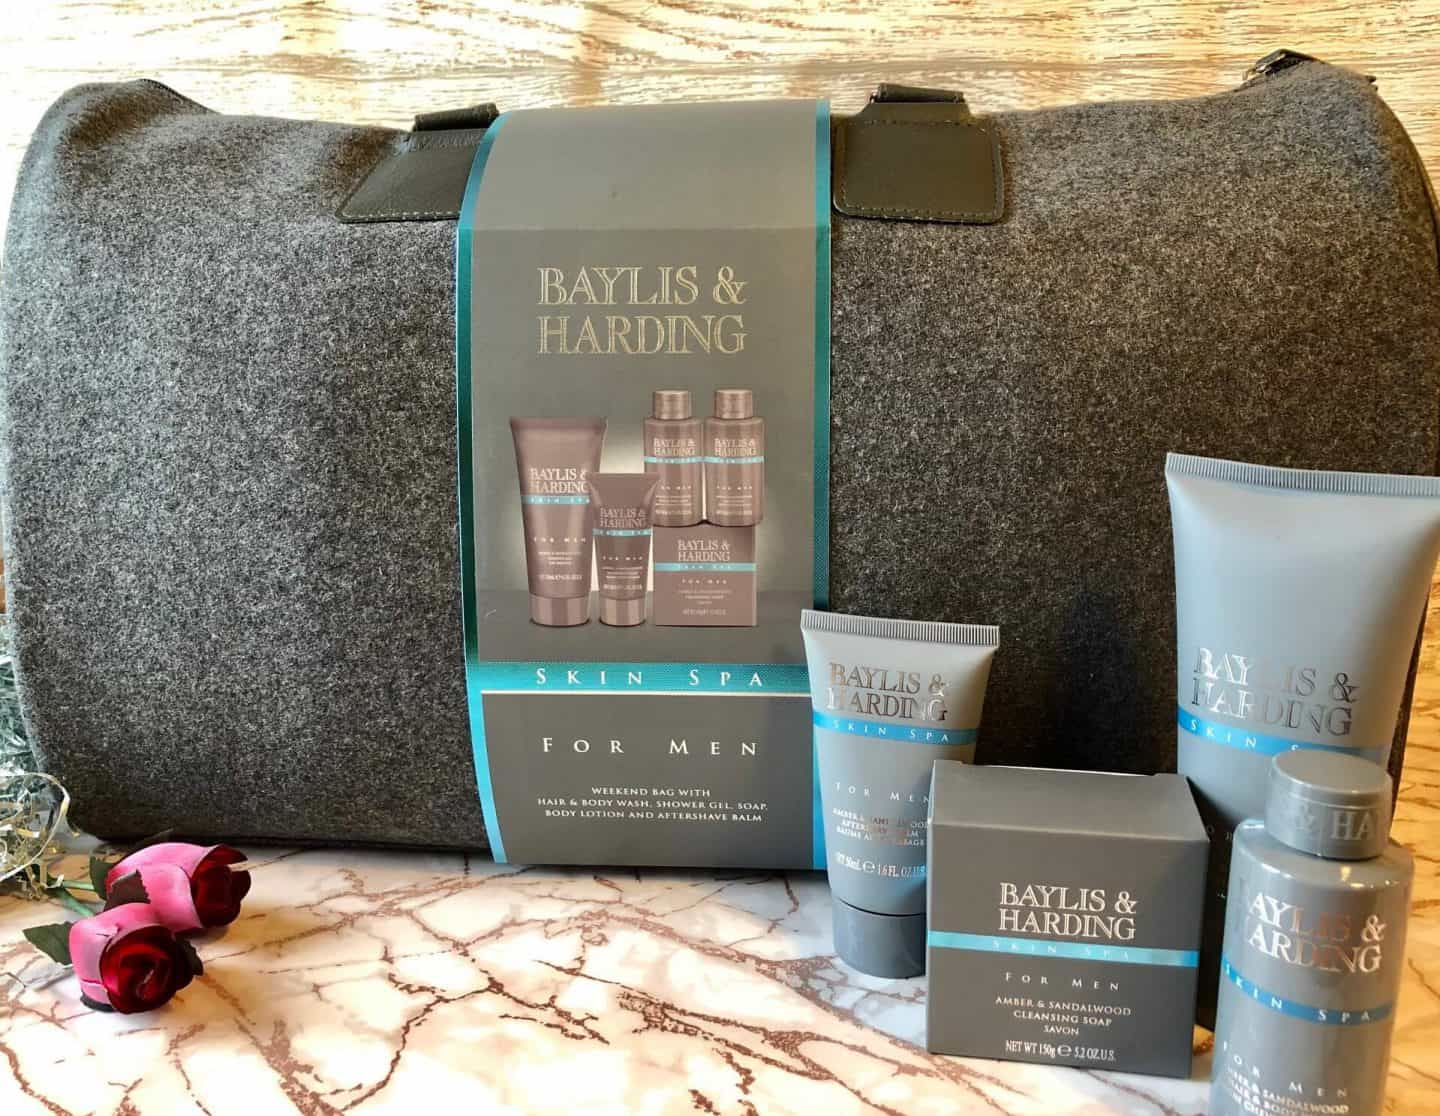 Baylis & Harding Skin spa men's weekend bag